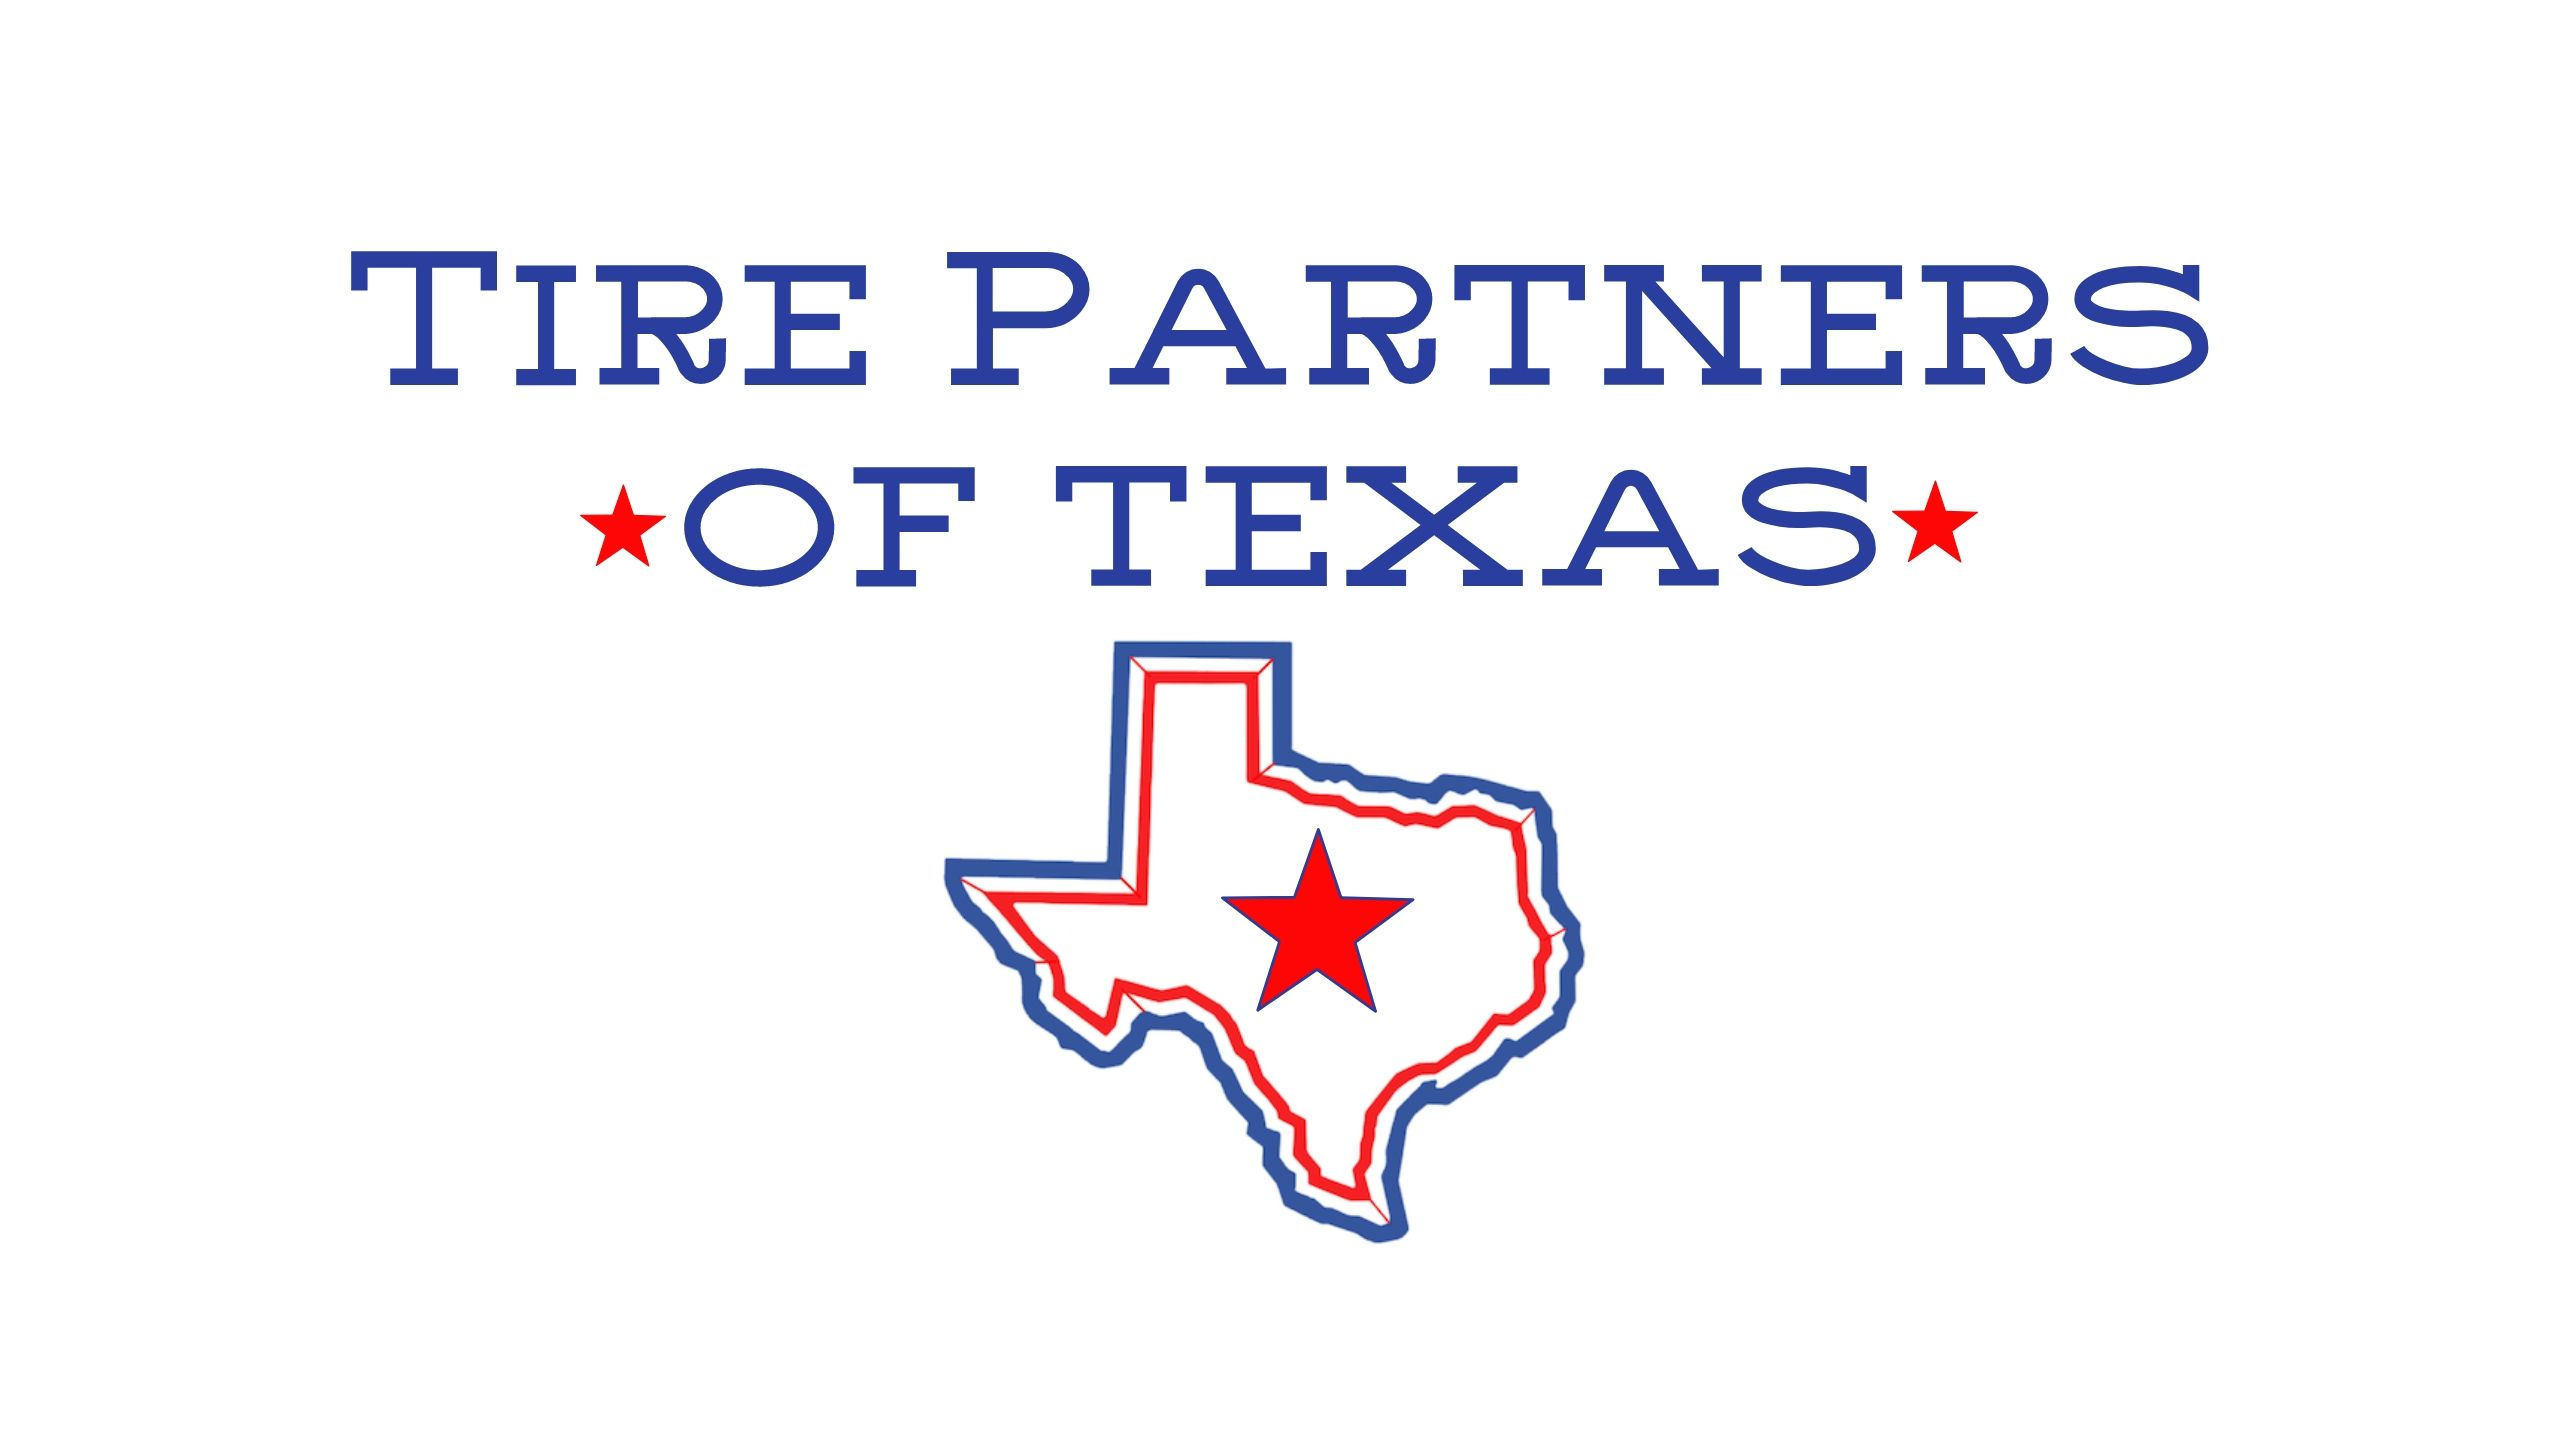 Tire Partners Of Texas